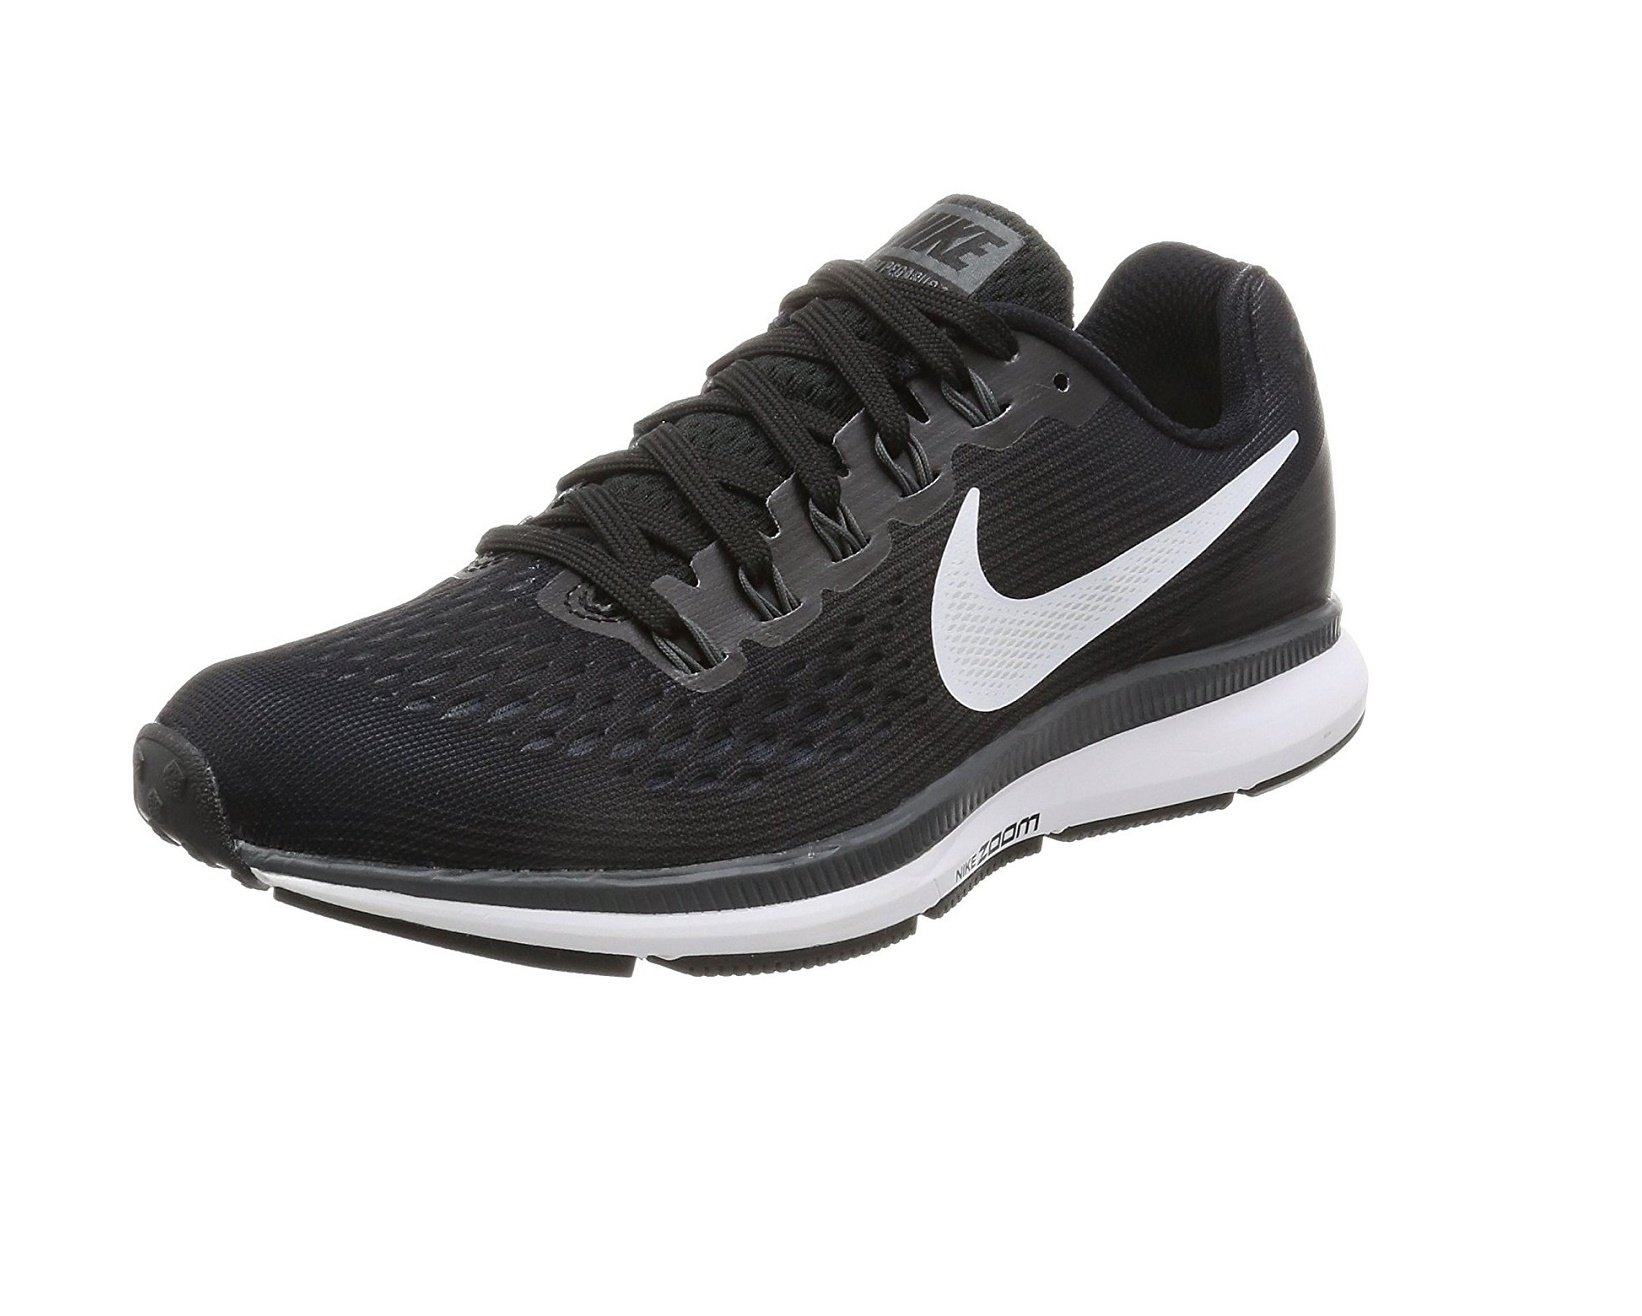 b736e7d2cd620 Nike Women's Air Zoom Pegasus 34 TB Running Shoe (7.5 B(M) US, Black)